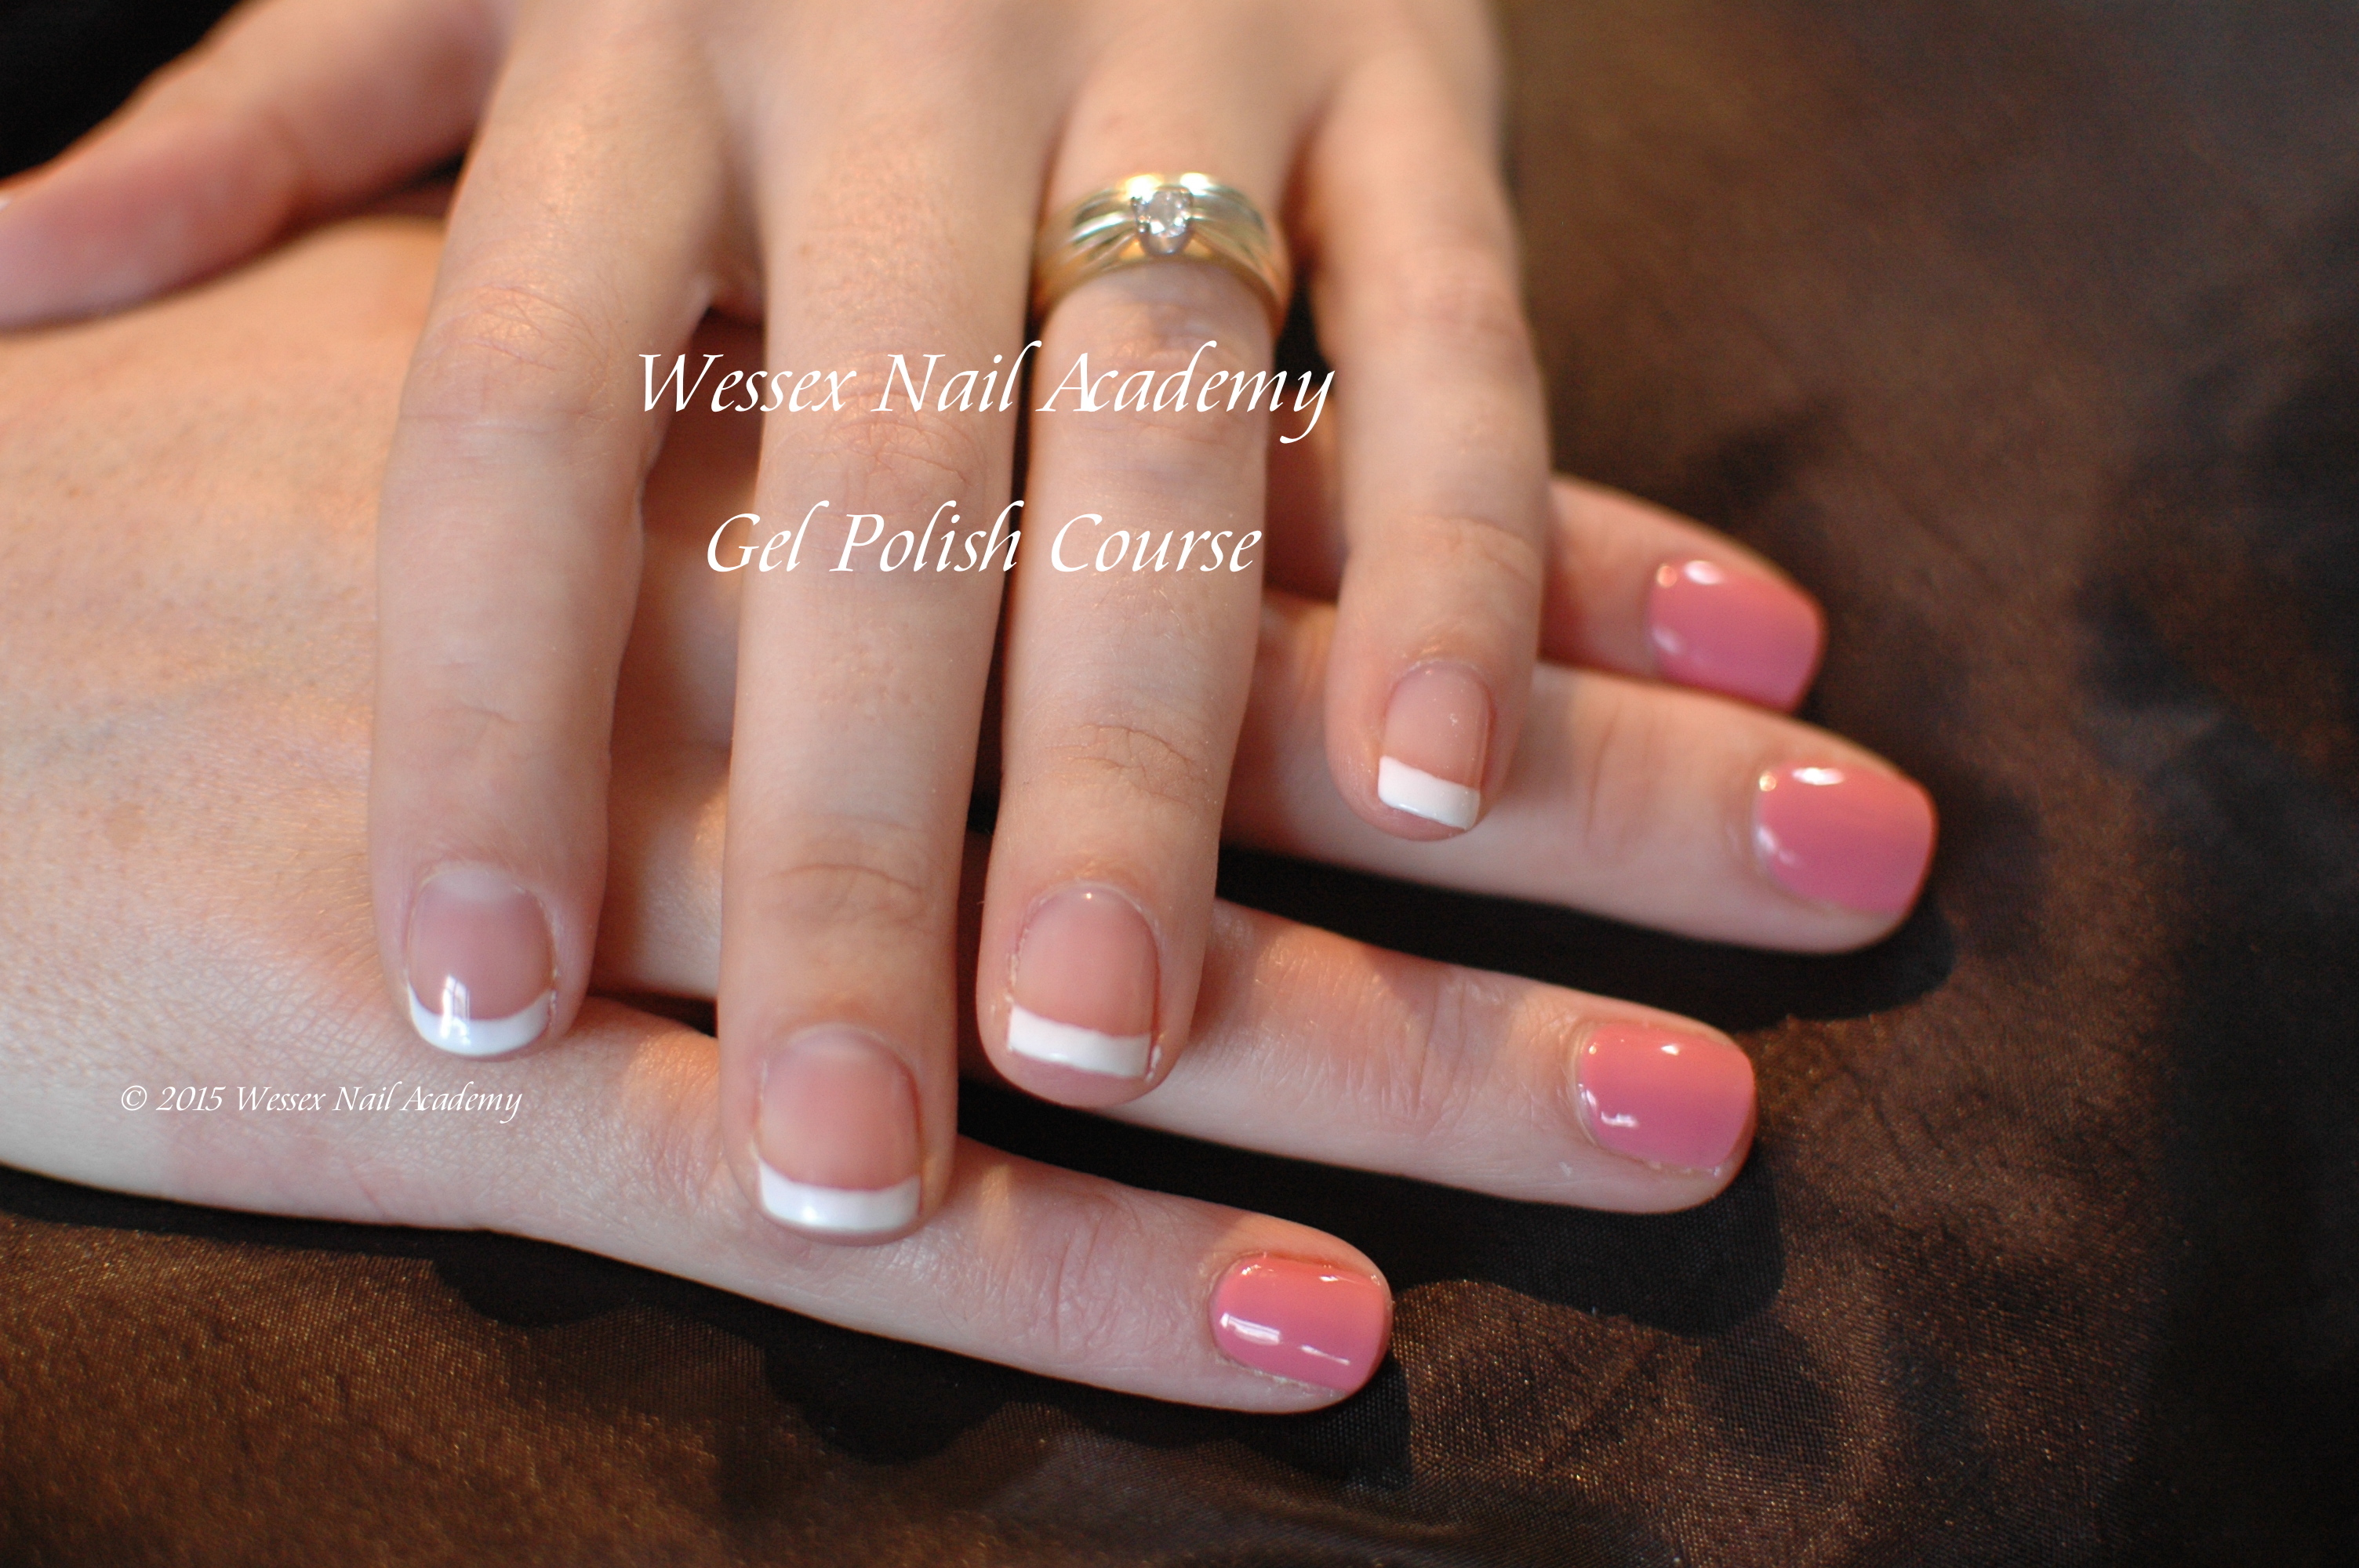 Gel Polish Beginners Course Students work, Nail extension training , nail training course, Wessex Nail Academy Okeford Fitzpaine, Dorset